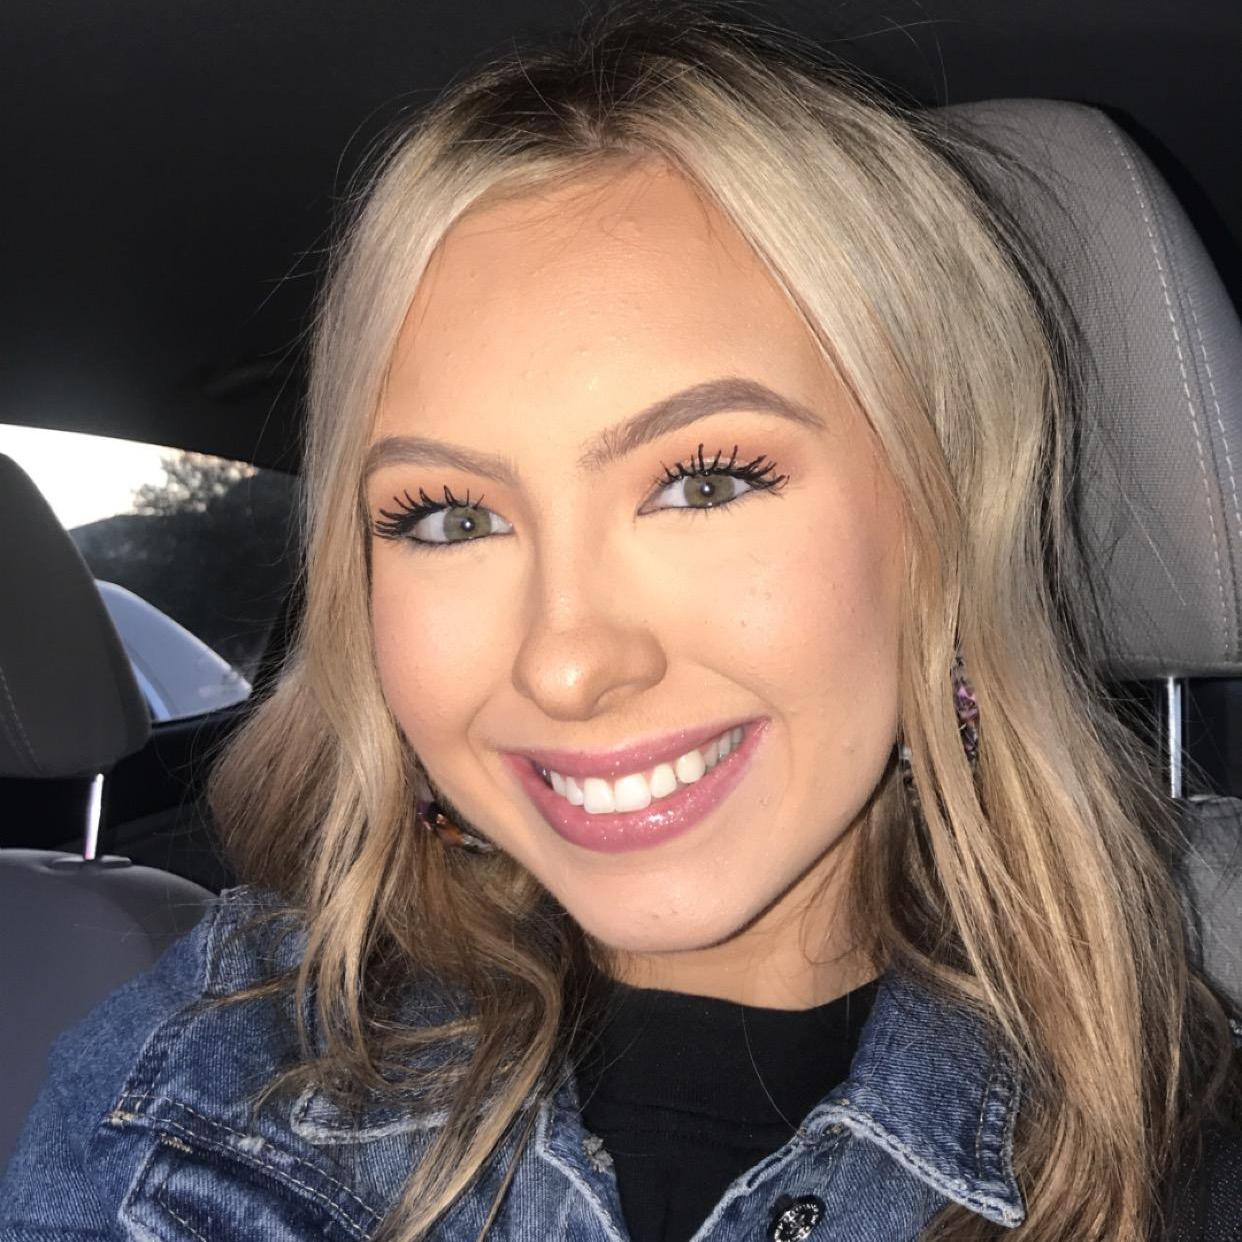 Baylee Mitchell's Profile Photo